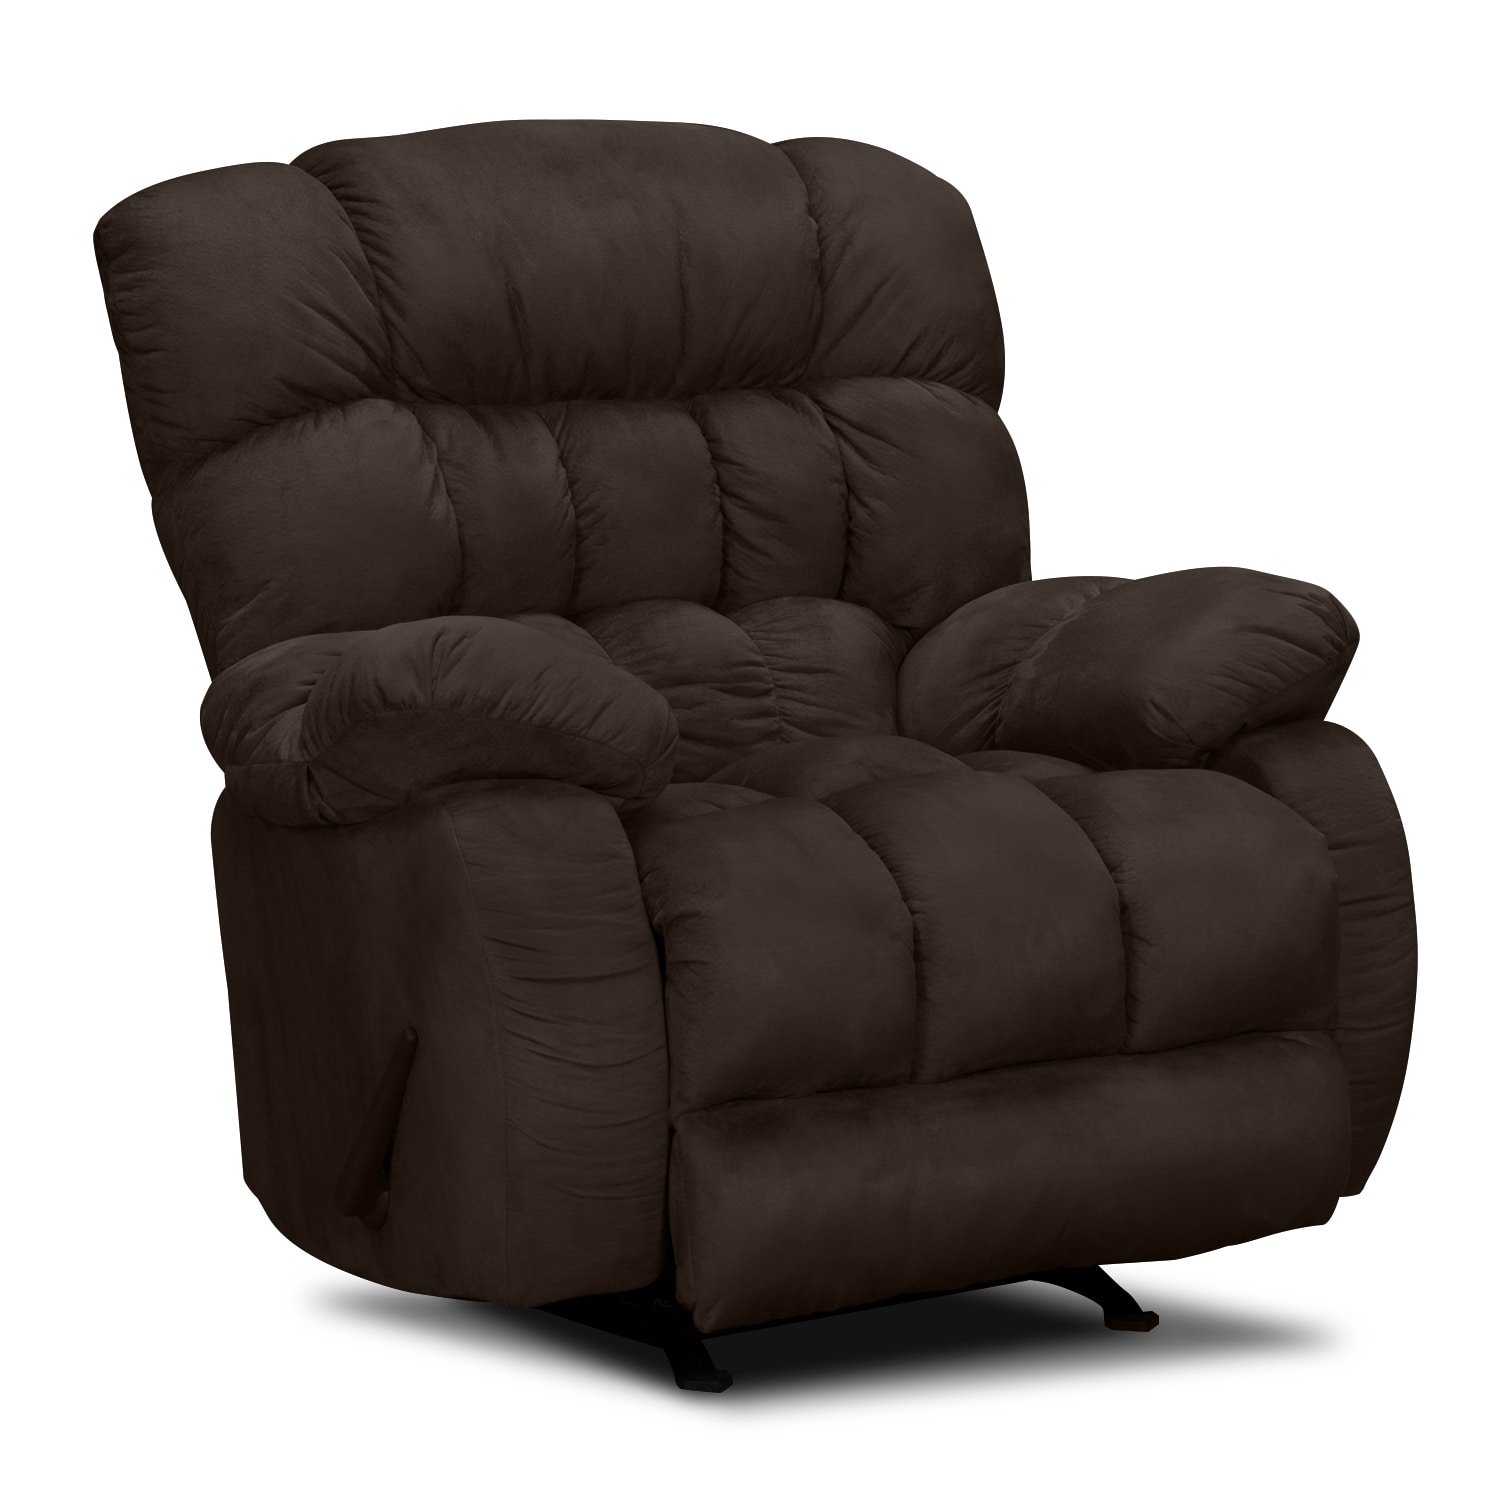 Sonic Rocker Recliner Brown Value City Furniture